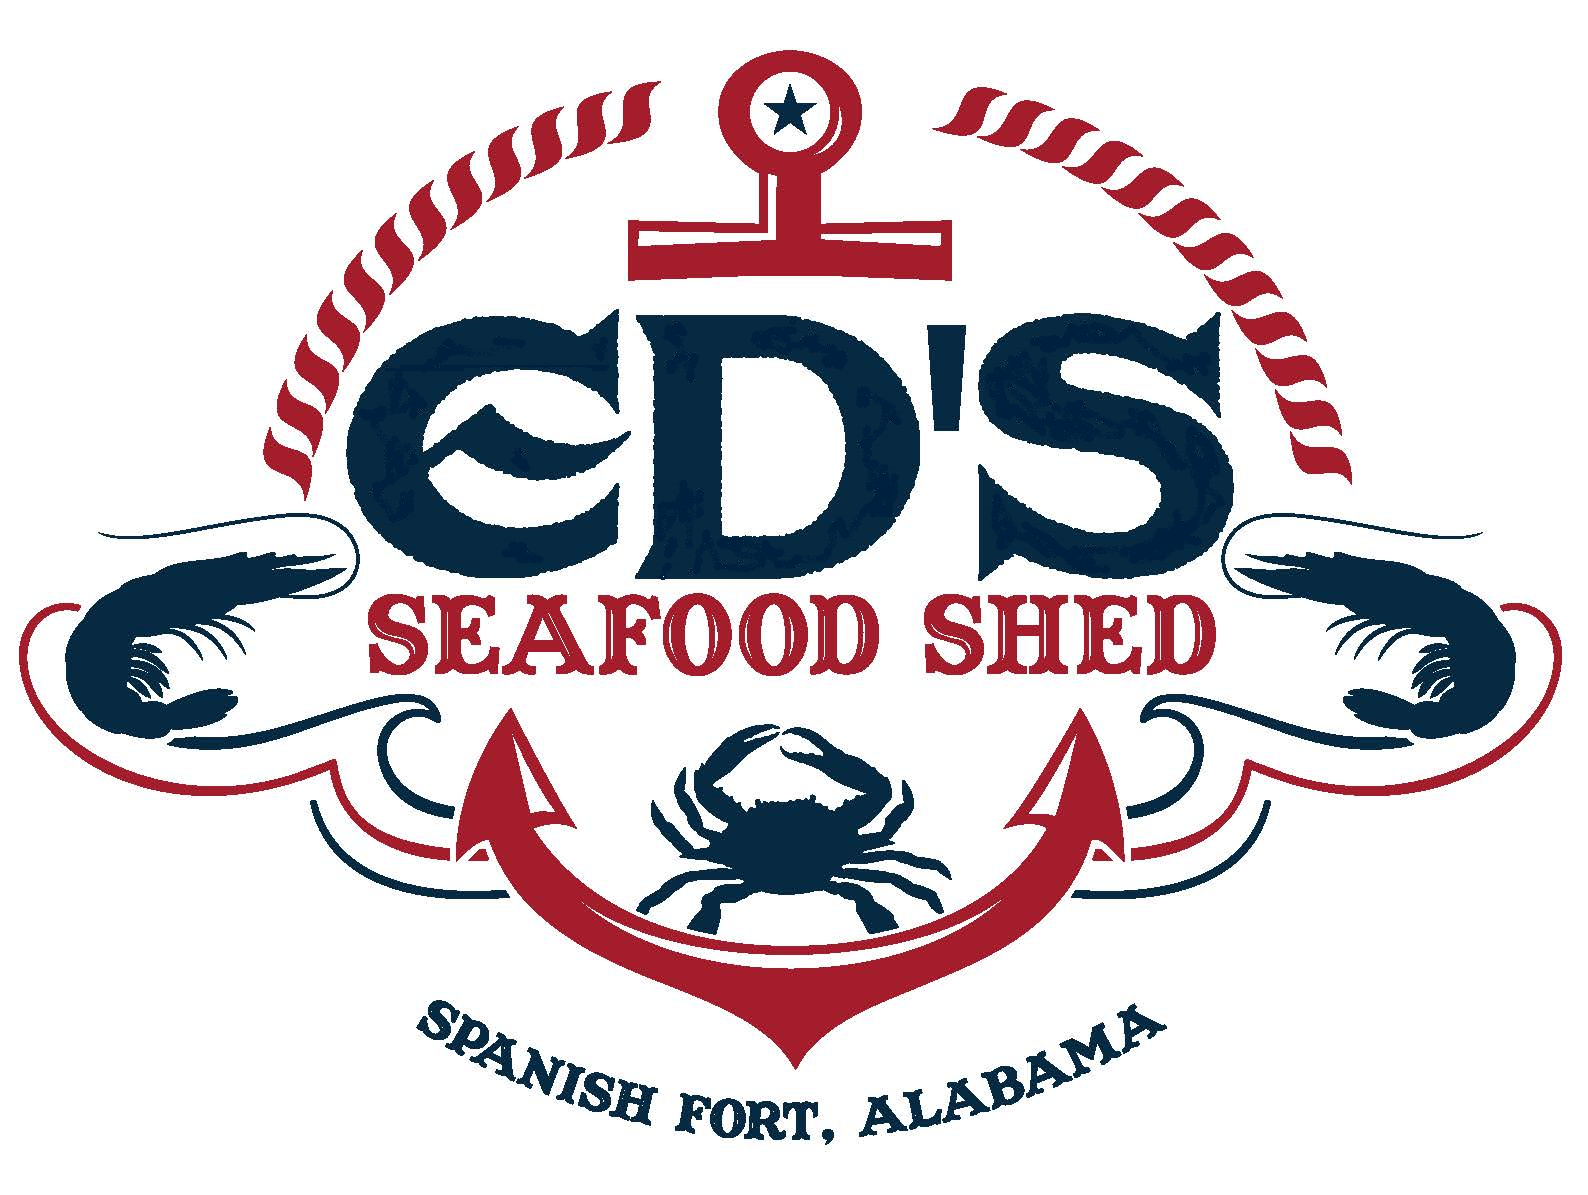 ED'S Seafood SHED logo Blue & Red.png